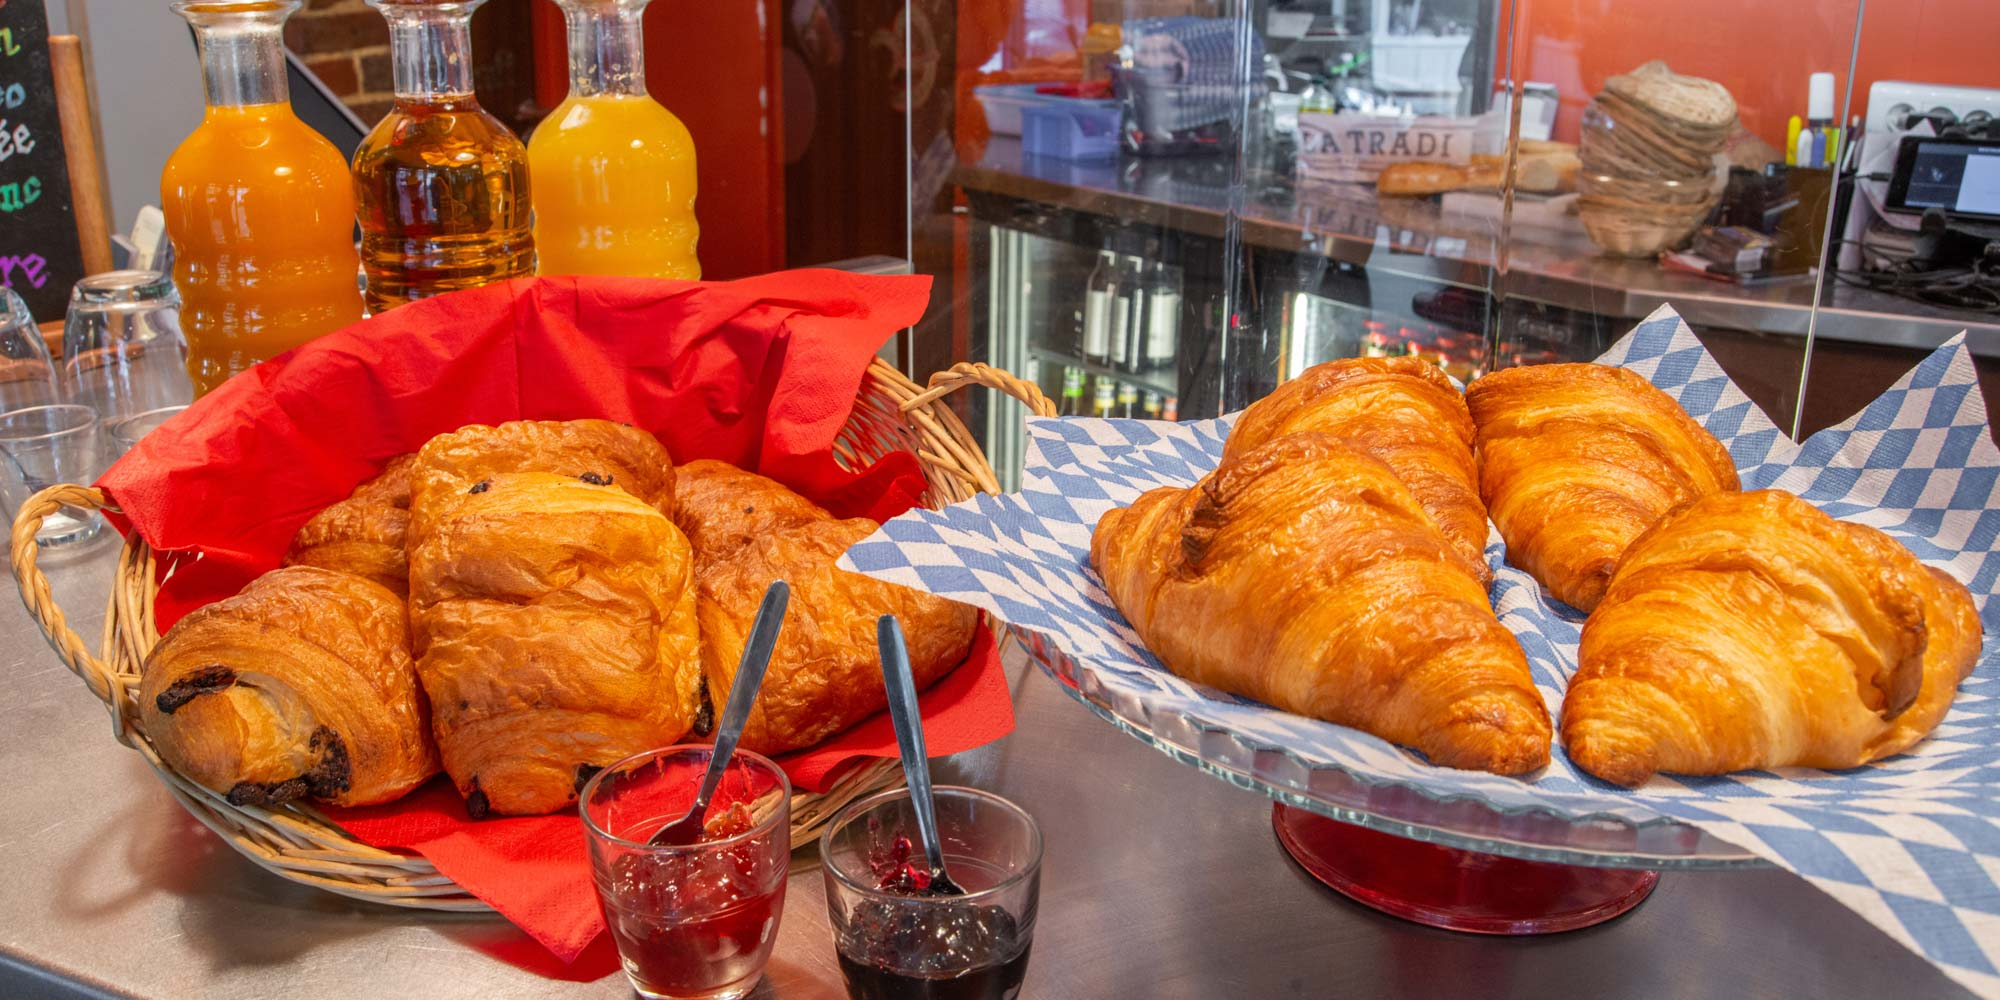 Brunch Café Biergit (75017 Paris)